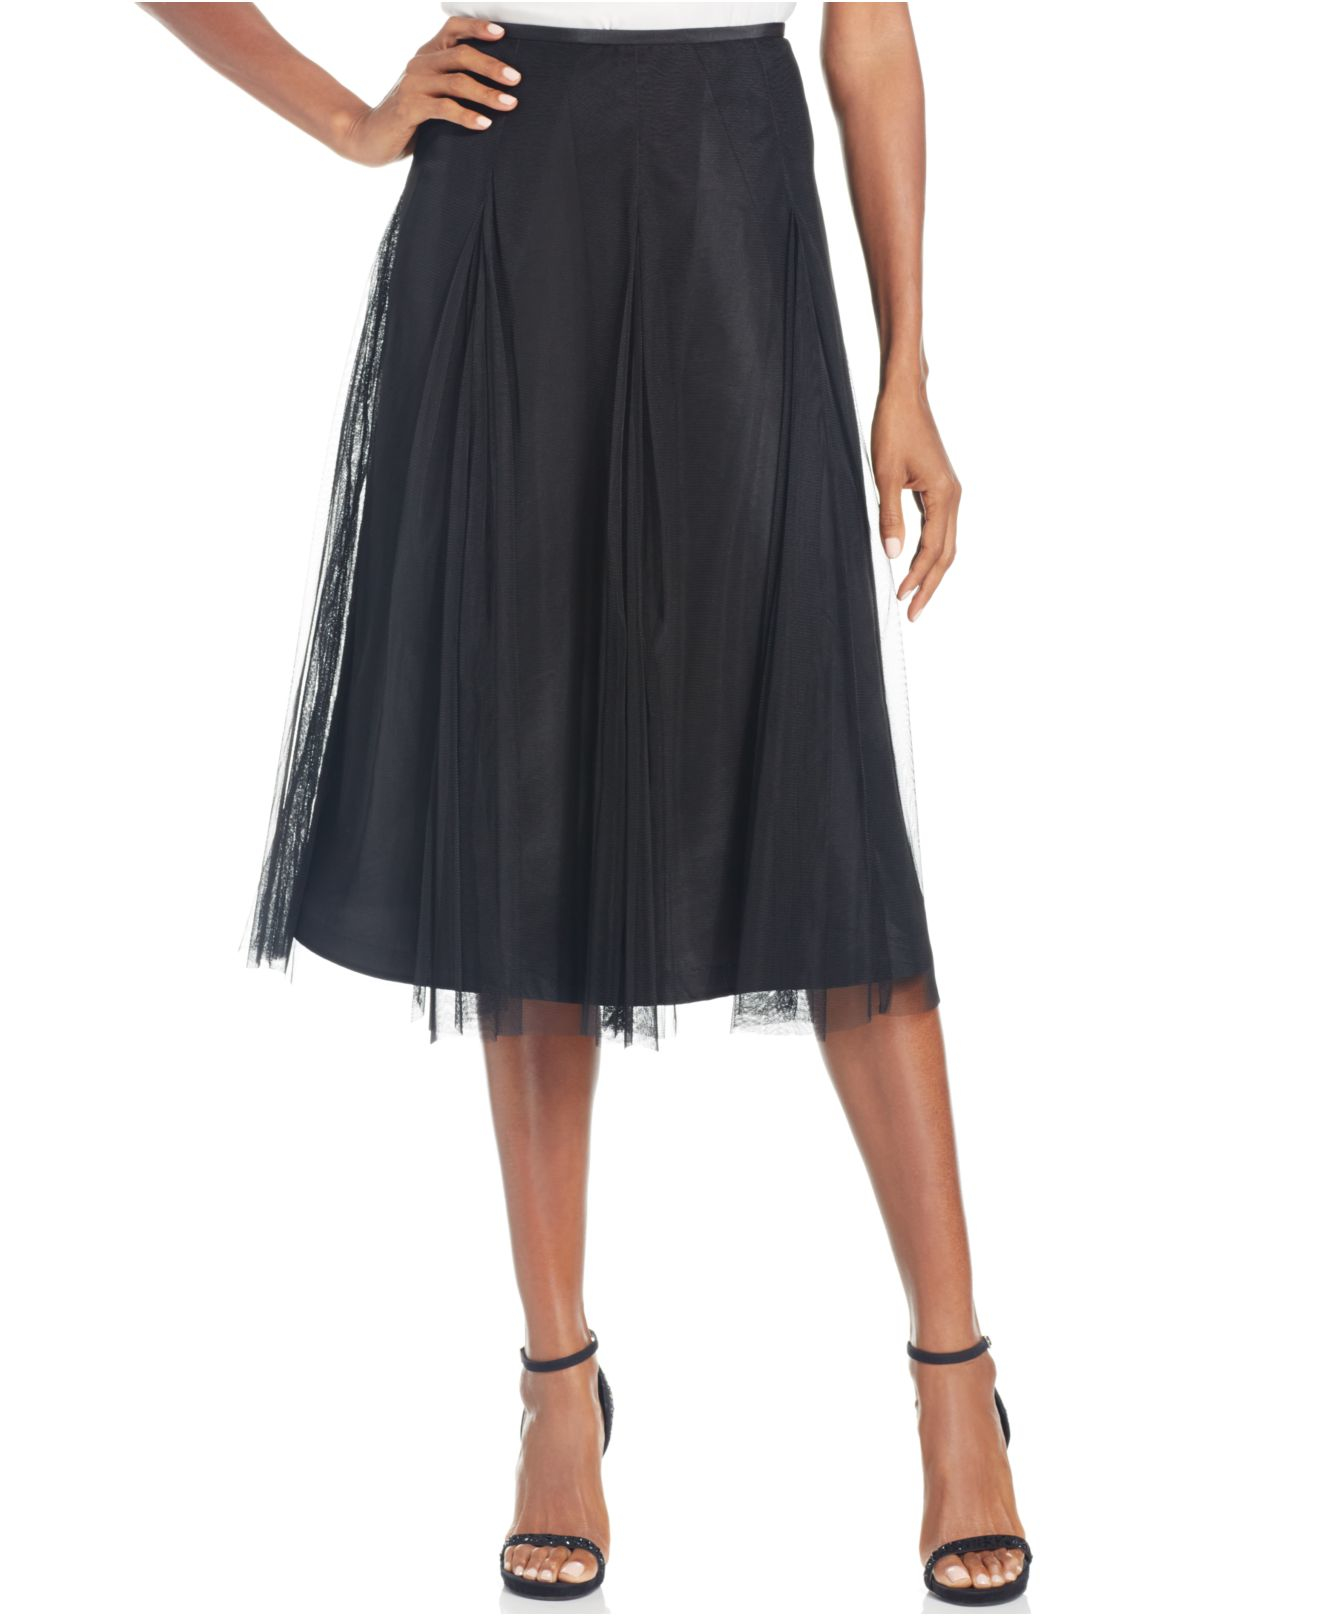 Long Tea Length Pleated Skirt. Longer length black pleated skirt has a comfy elasticized waistband. Easy-to-wear woven georgette lined skirt features a floaty design and crisp pleating.